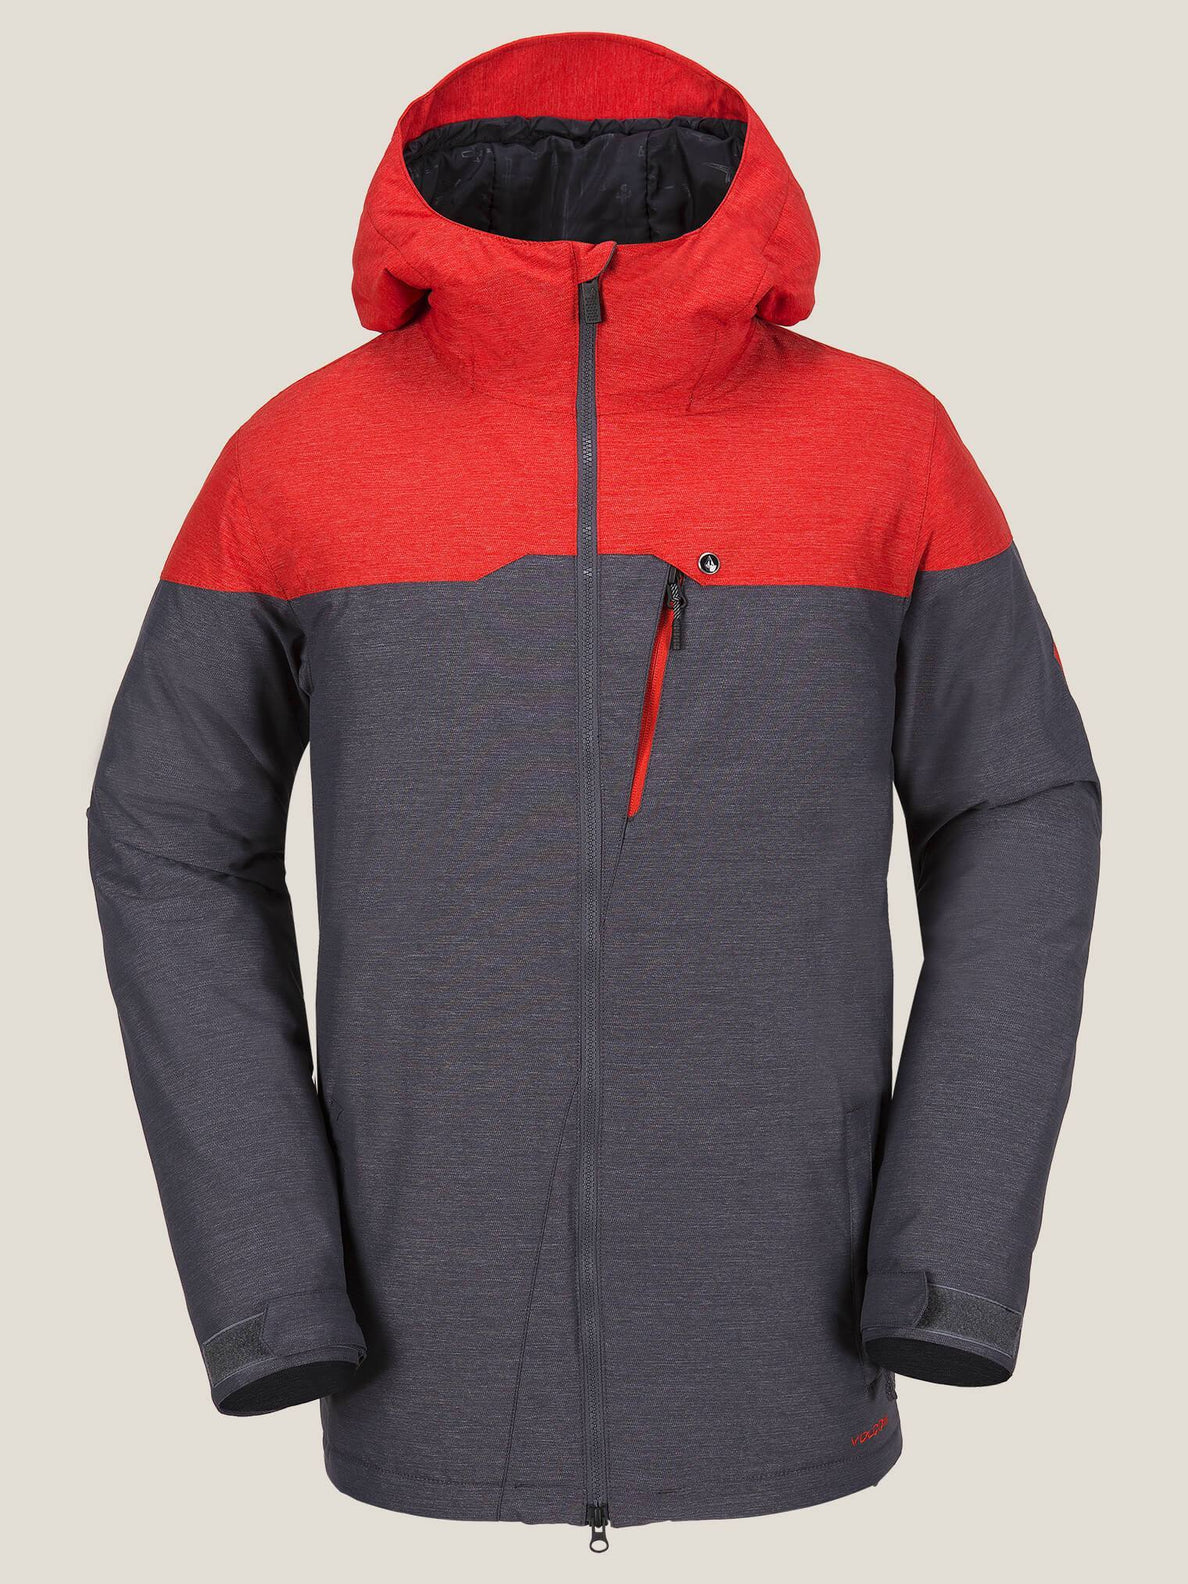 Prospect Jacket - Fire Red